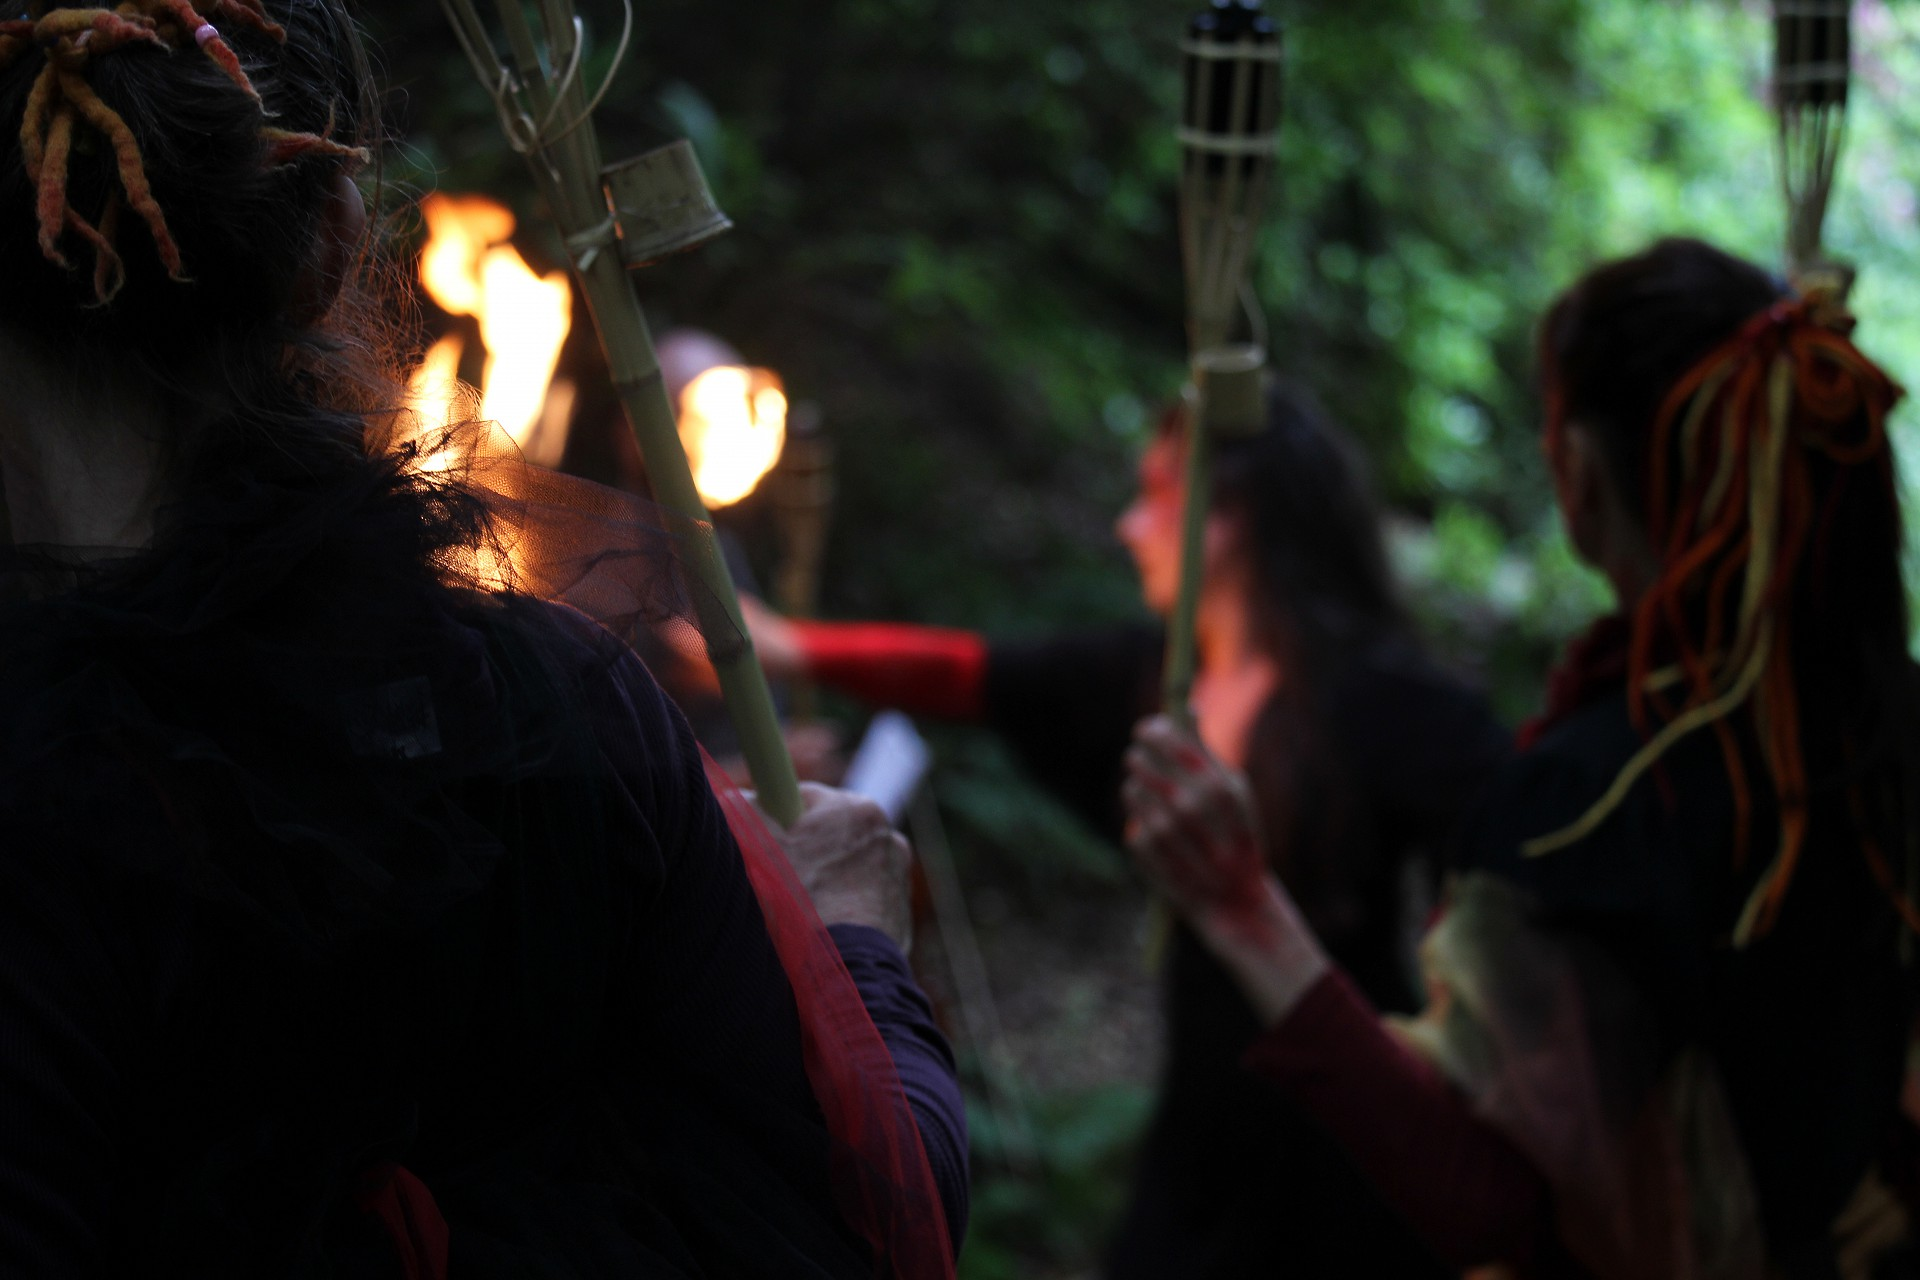 Dancers lead audience members by torchlight